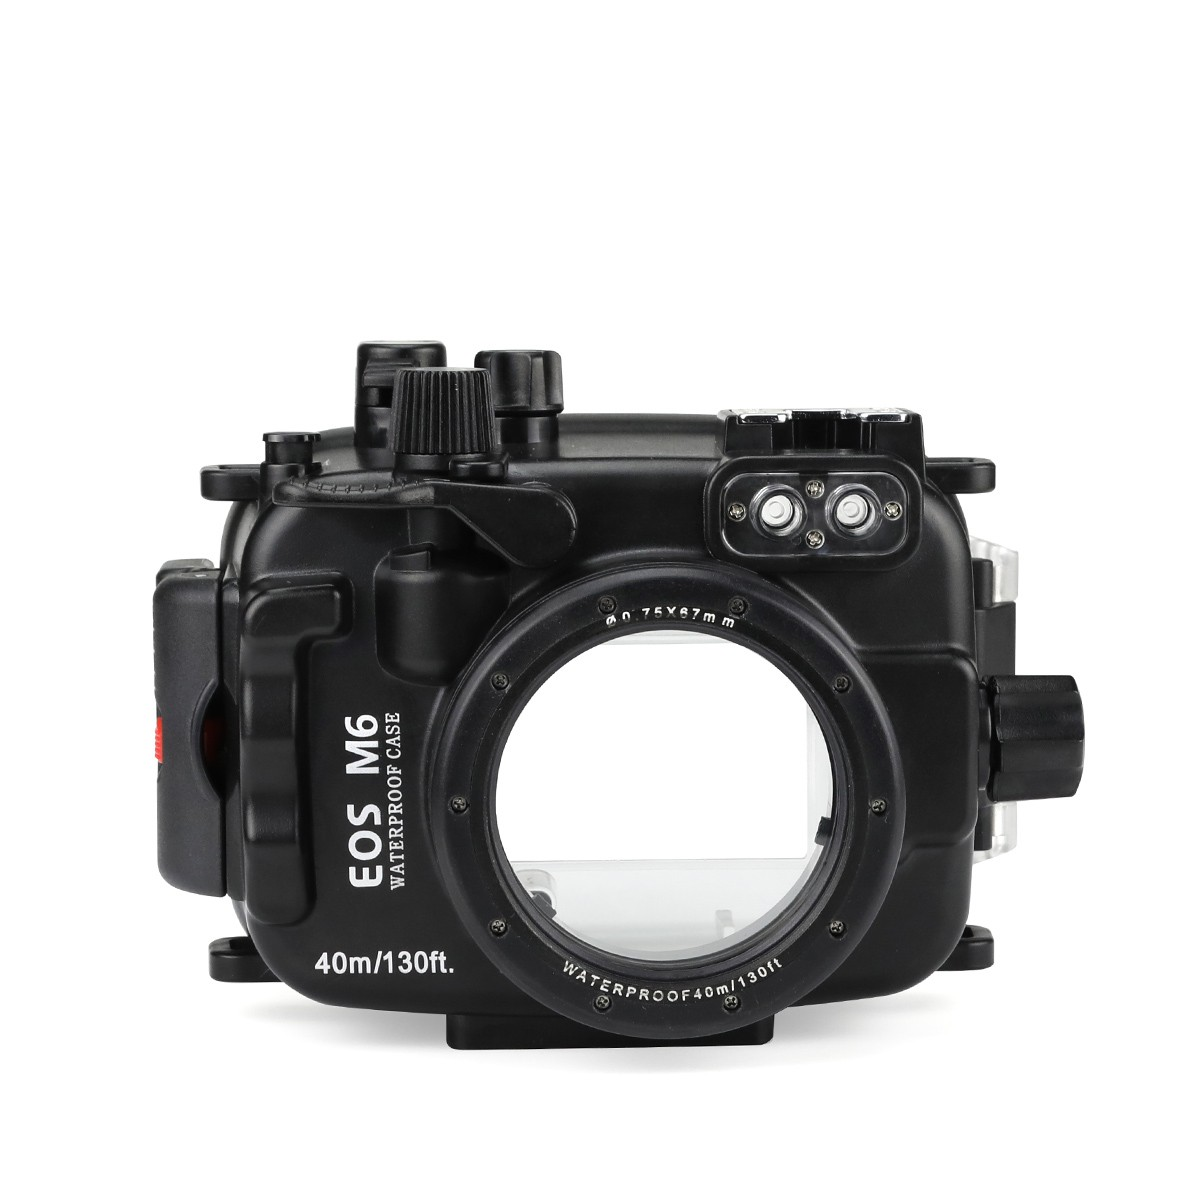 SeaFrogs 40m/130ft Underwater Diving Camera Housing Case For Canon EOS M6 22mm Lens Waterproof Camera Bags For Canon EOS M6 22mm mcoplus 40m 130ft waterproof underwater housing camera case bag for canon eos g16